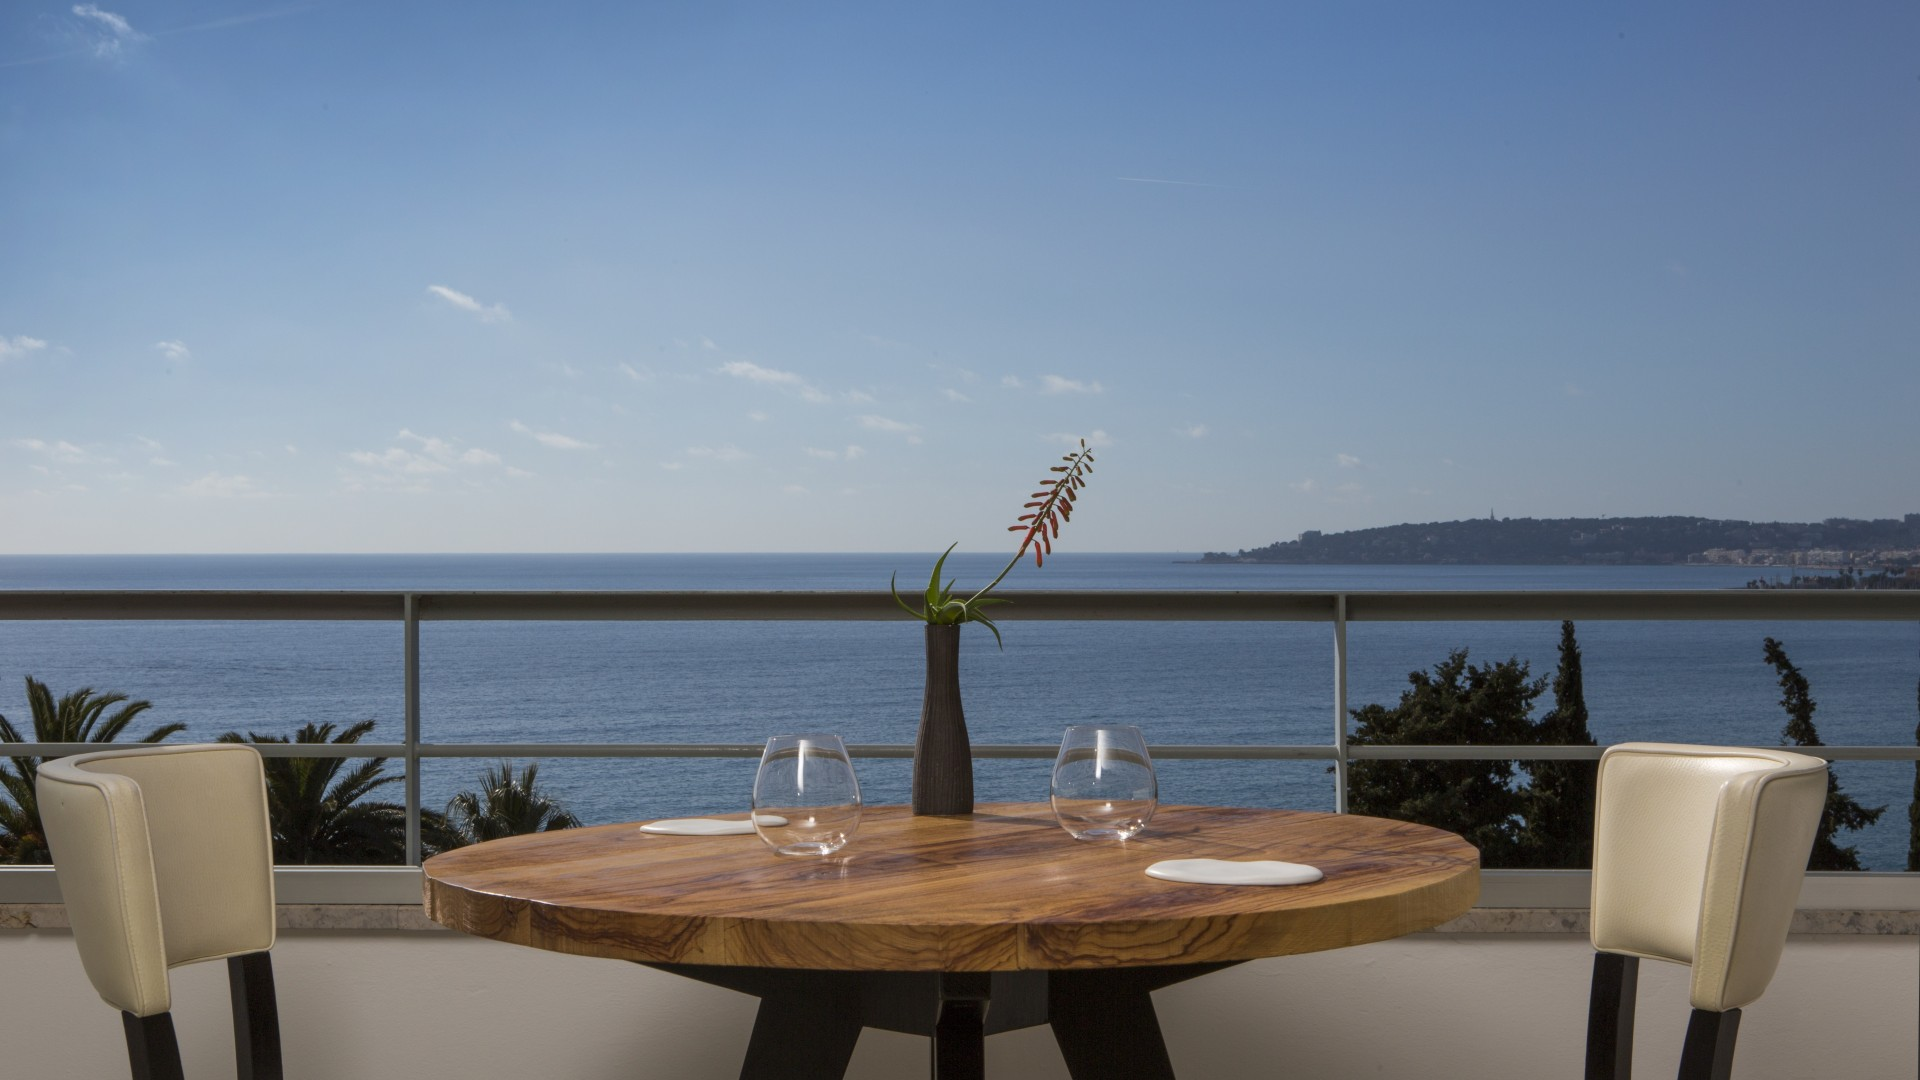 Restaurant Mirazur, Menton. World's 50 Best Restaurants.